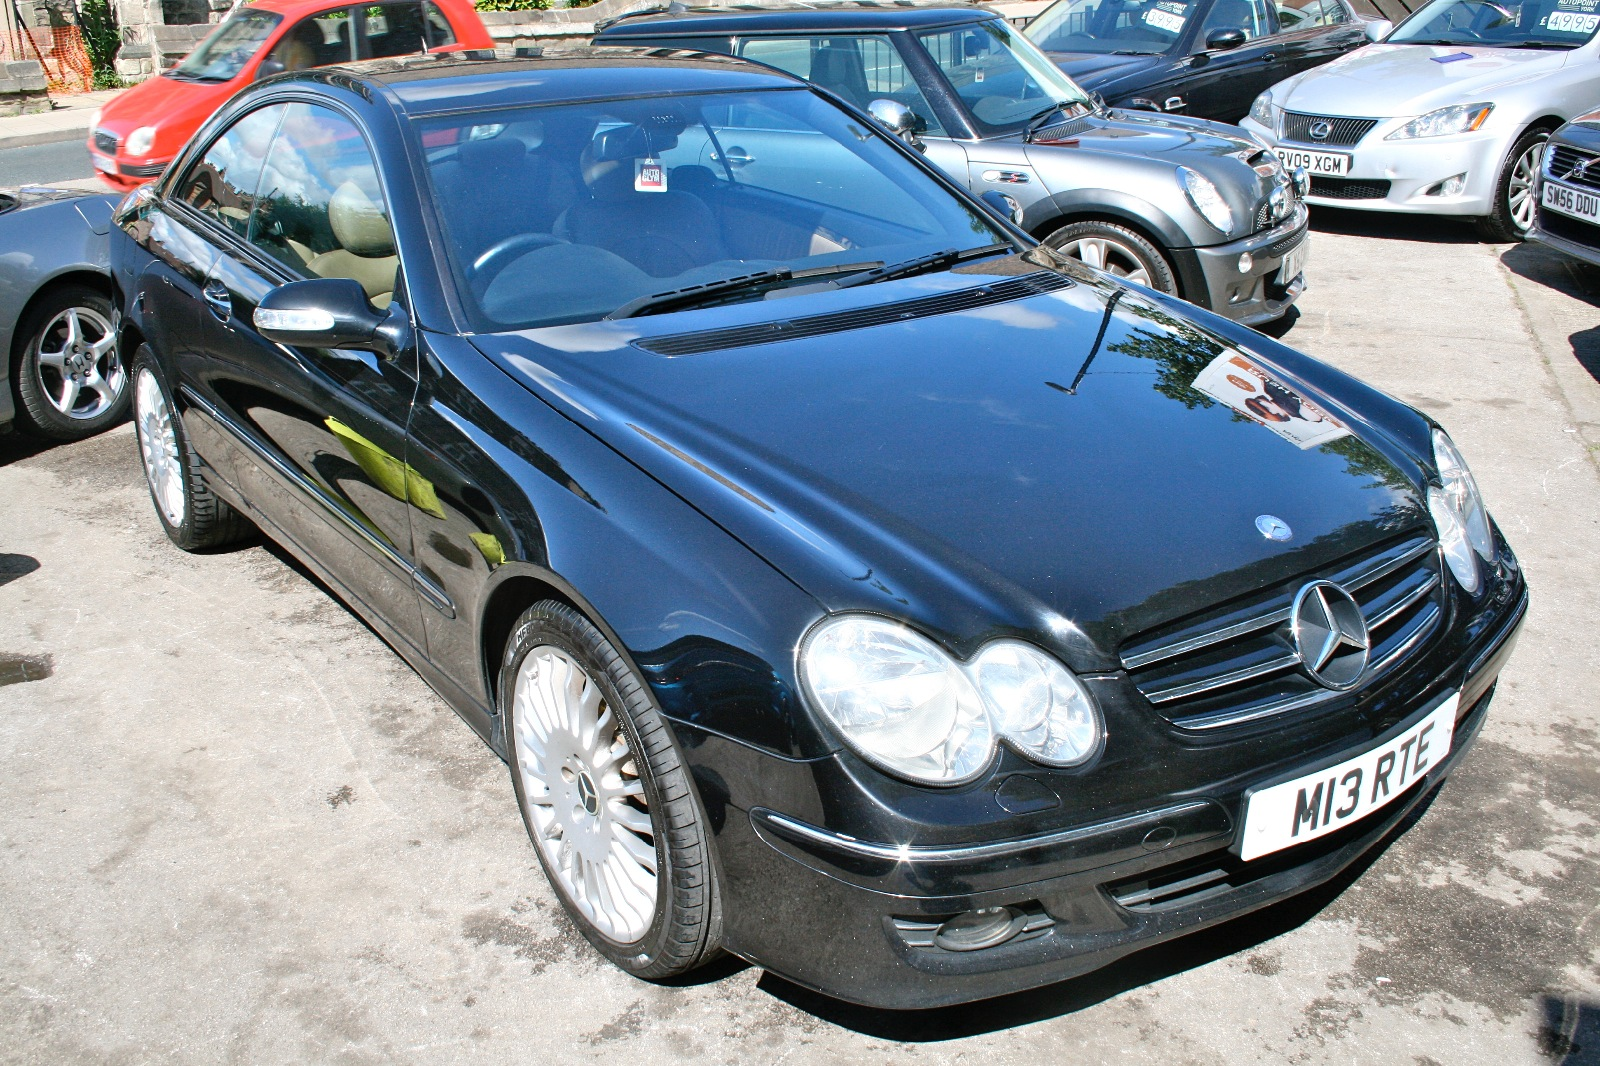 autopoint york ltd mercedes clk clk 320 cdi avantgarde. Black Bedroom Furniture Sets. Home Design Ideas